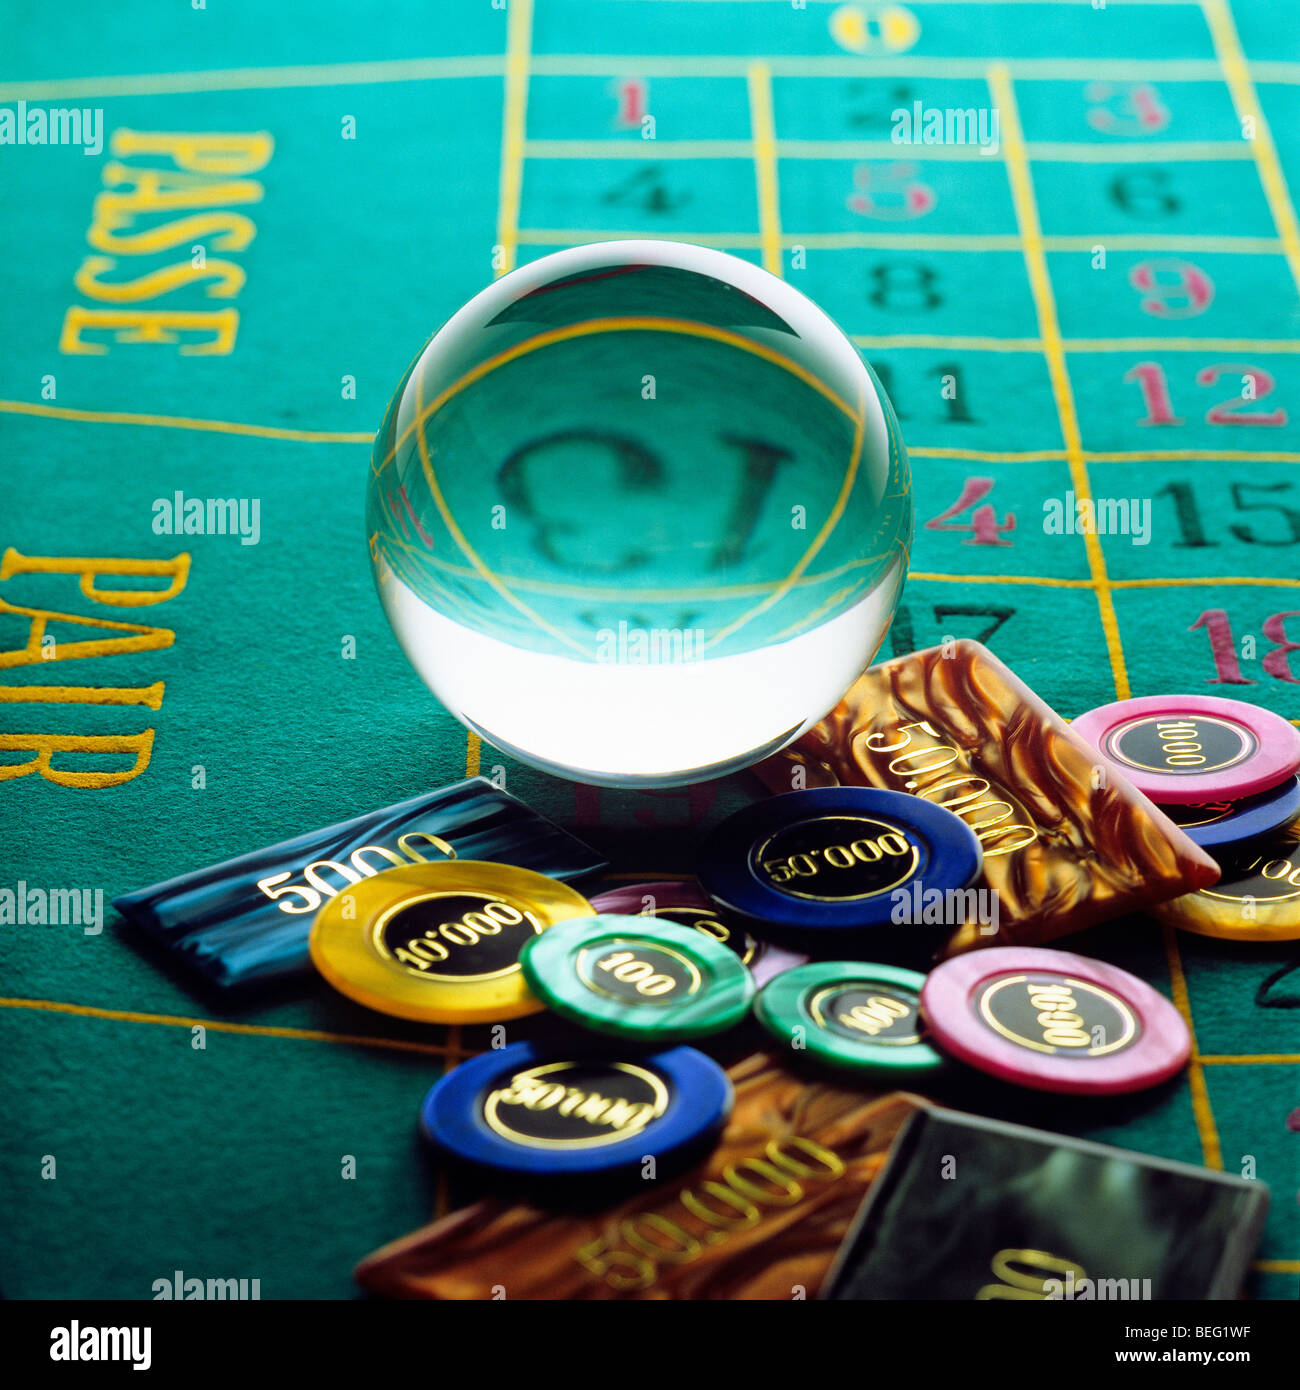 Crystal ball and gambling chips on roulette table - Stock Image